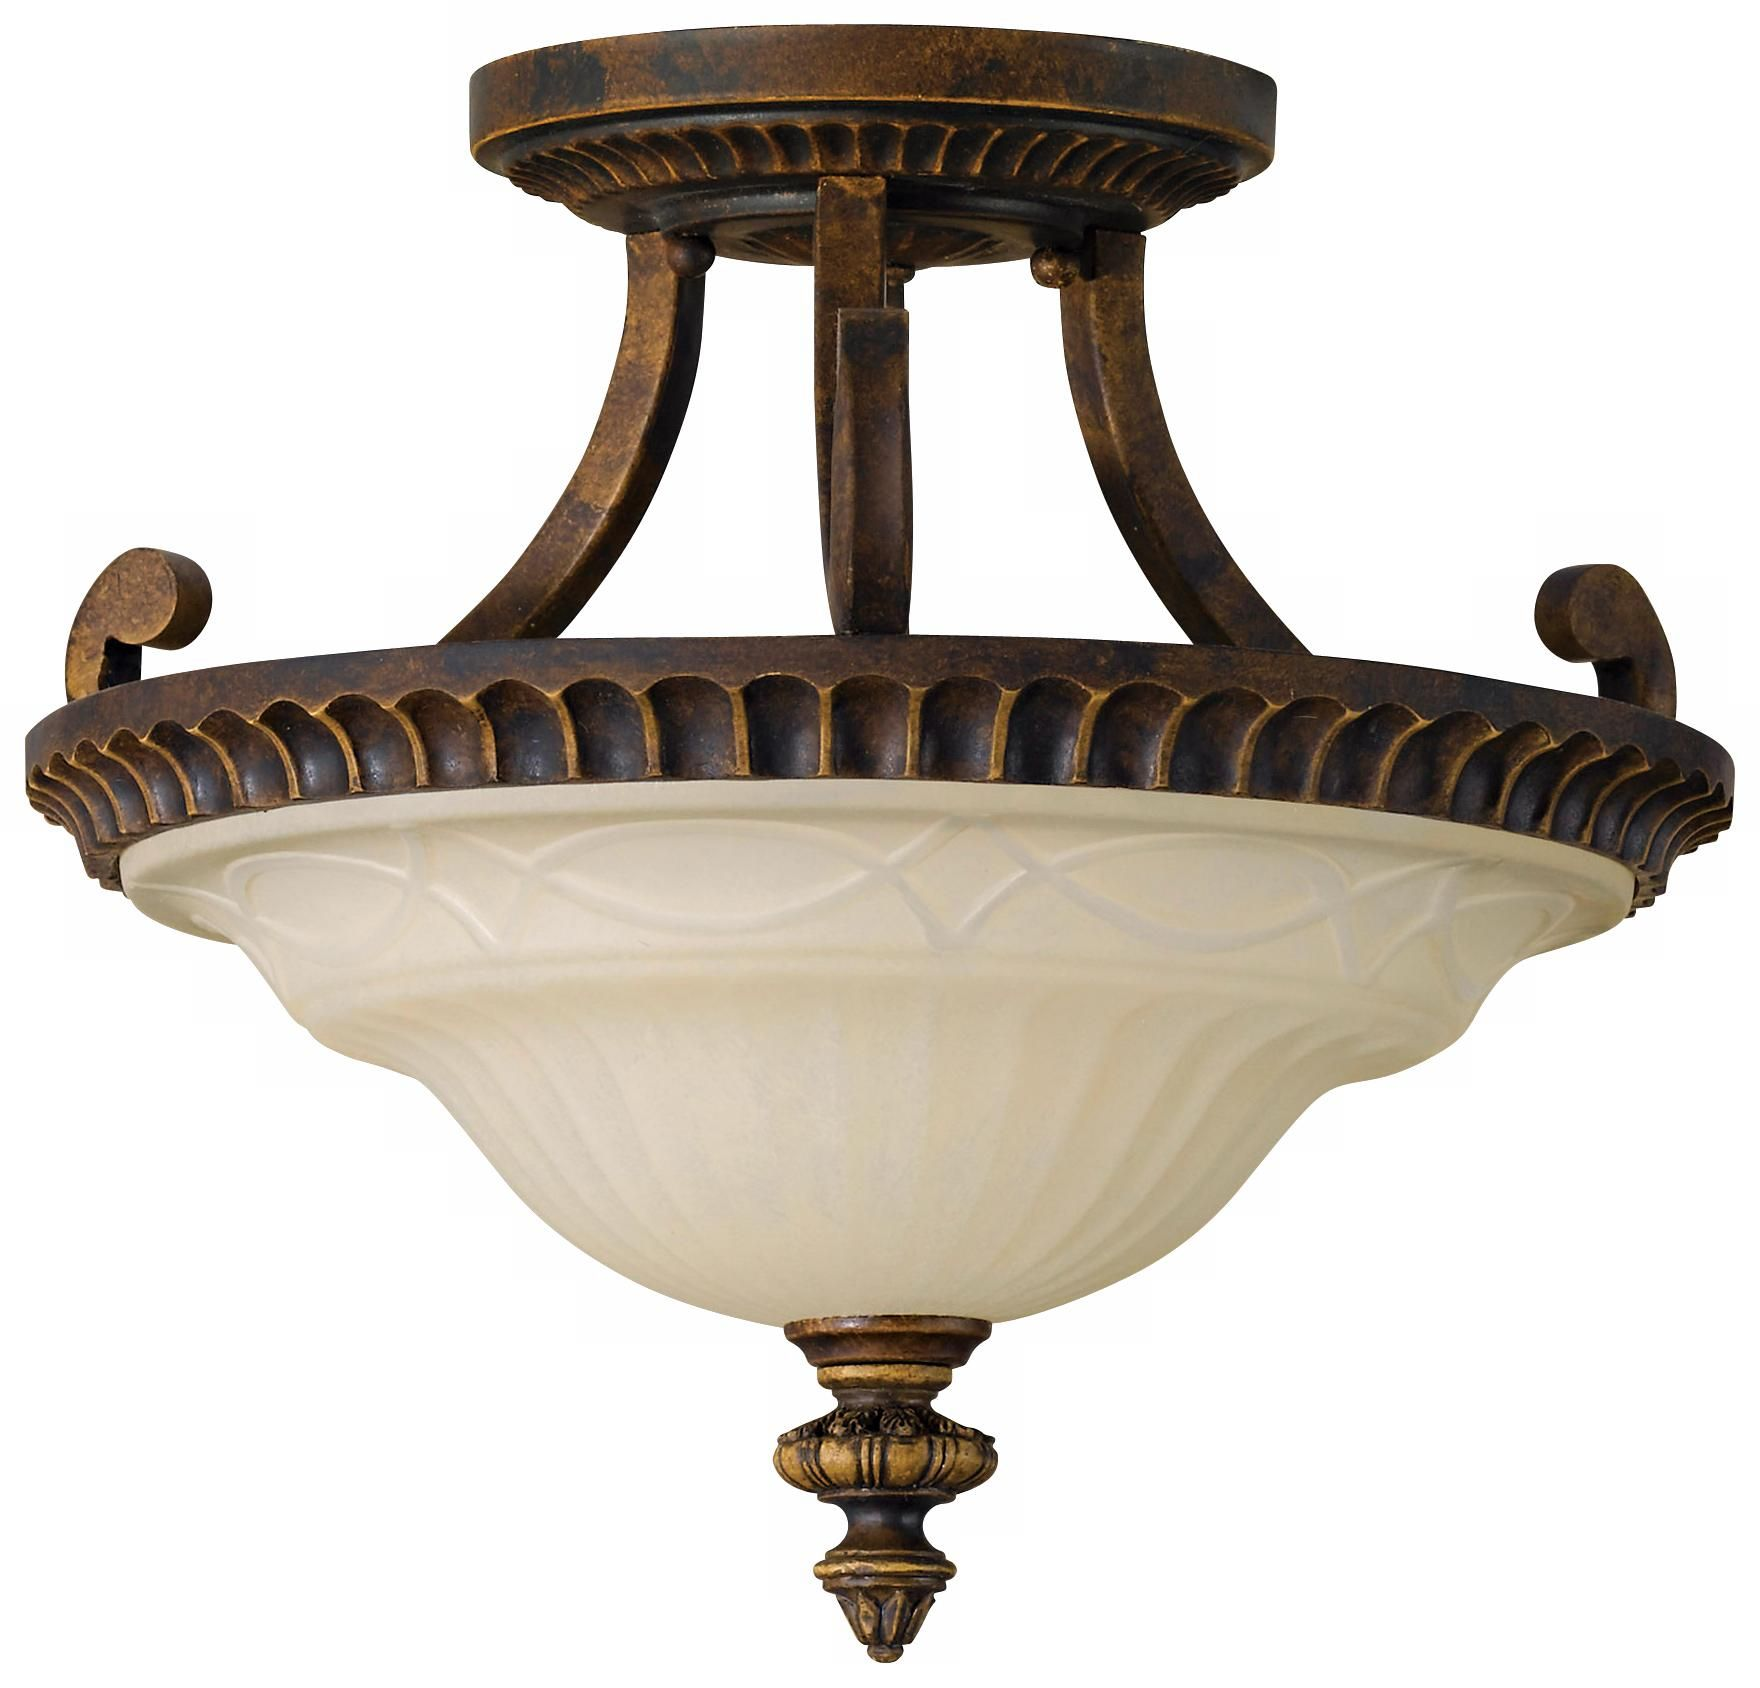 "Feiss Drawing Room 17"" Wide Semi Flushmount Ceiling Fixture"